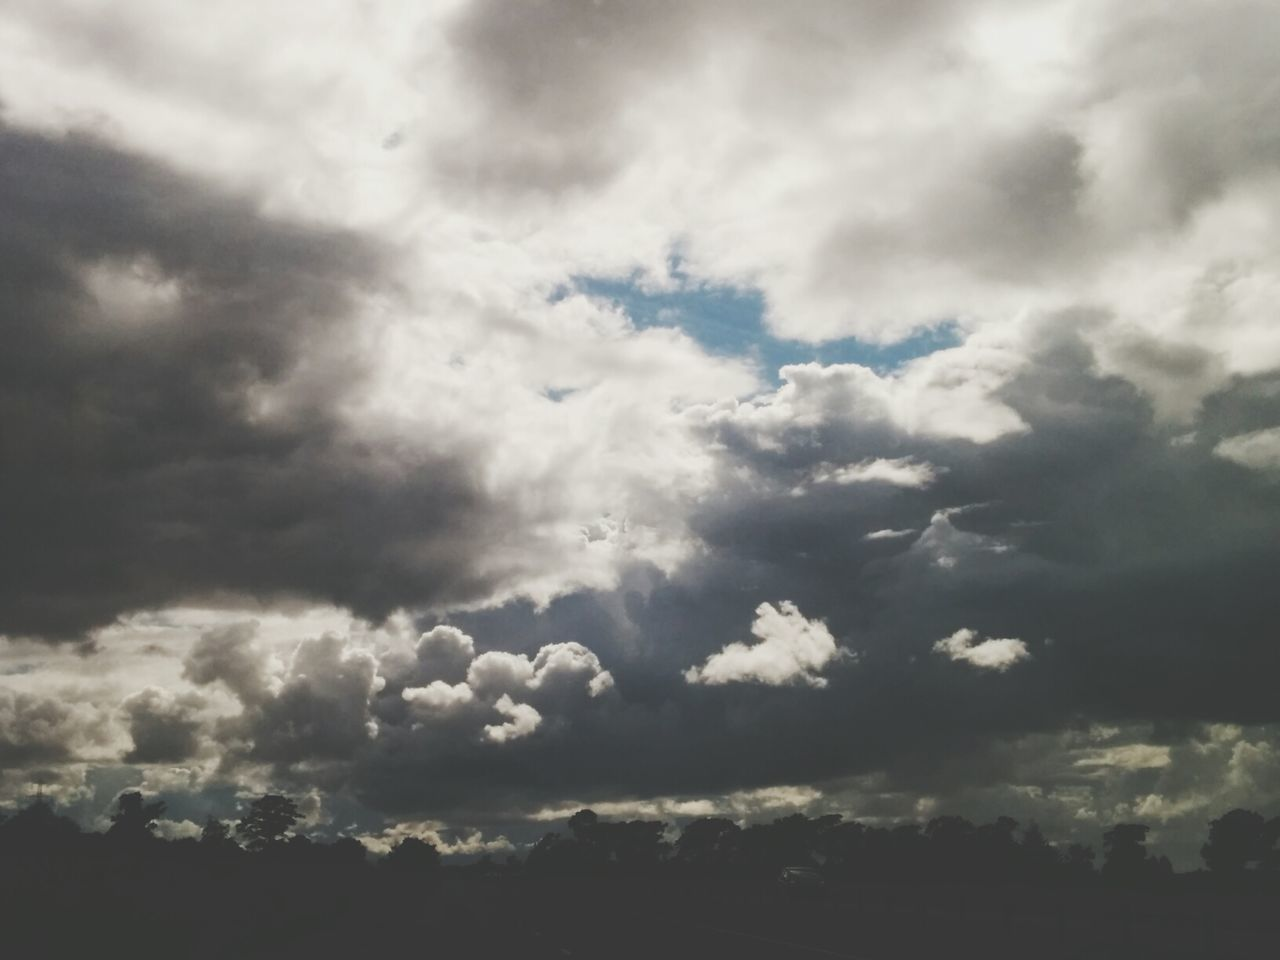 cloud - sky, nature, beauty in nature, sky, atmospheric mood, tranquility, cloudscape, no people, backgrounds, scenics, tranquil scene, weather, outdoors, day, low angle view, full frame, sky only, storm cloud